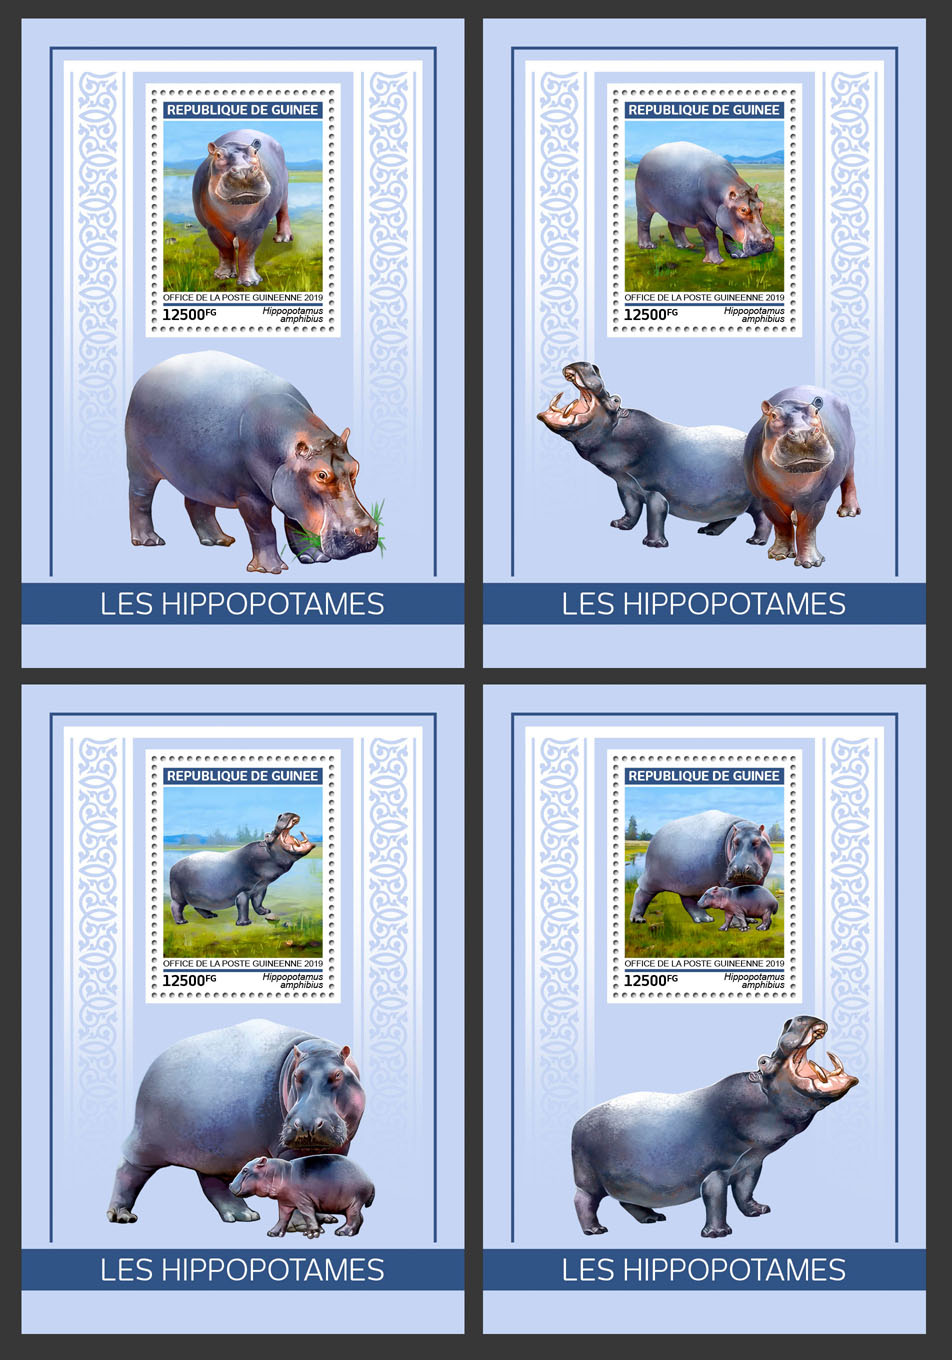 Hippopotamus - Issue of Guinée postage stamps